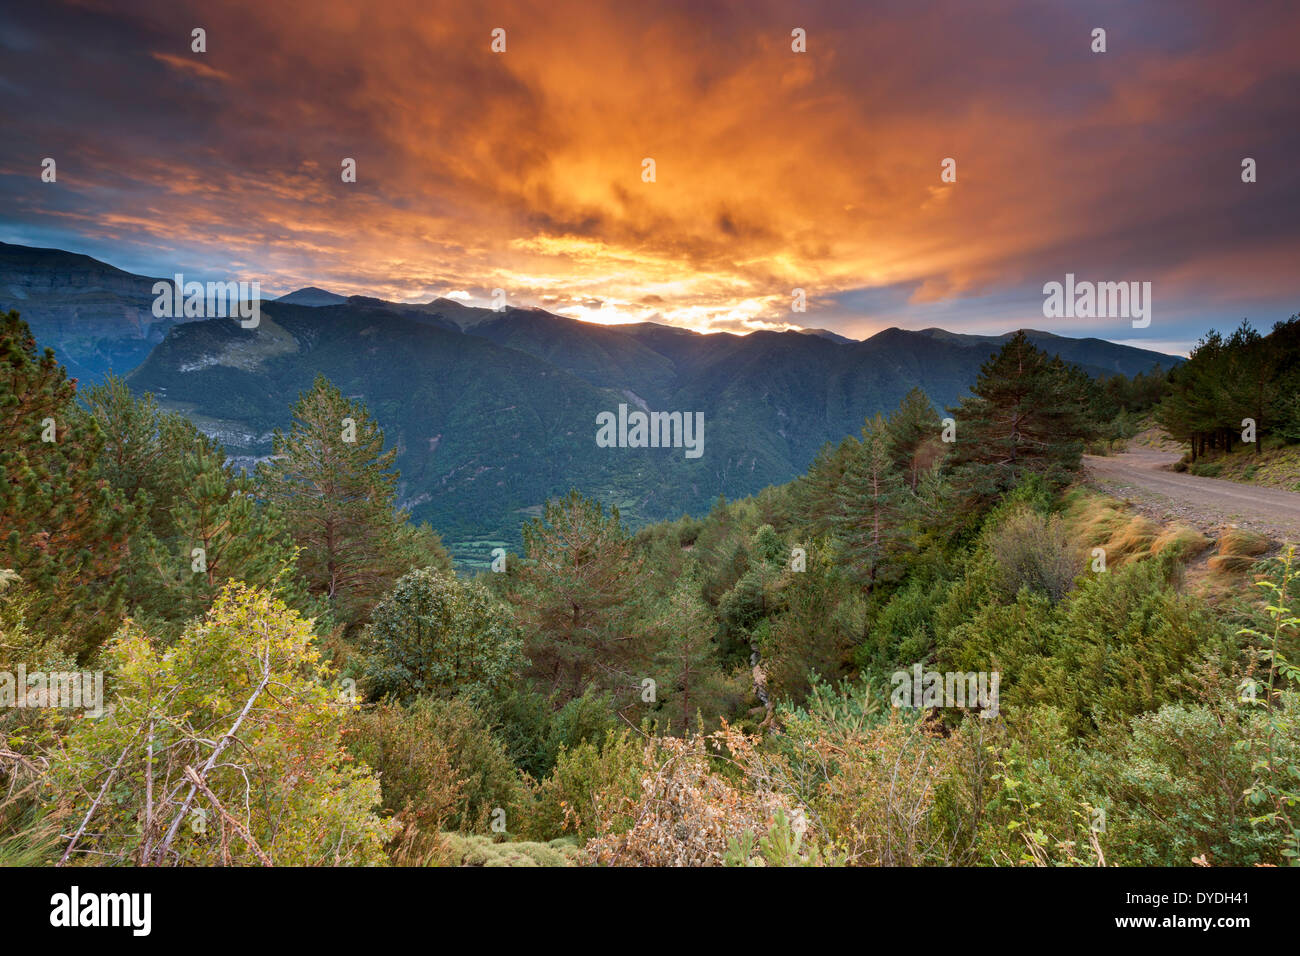 Sunrise over Valle de Broto in the Pyrenees. - Stock Image